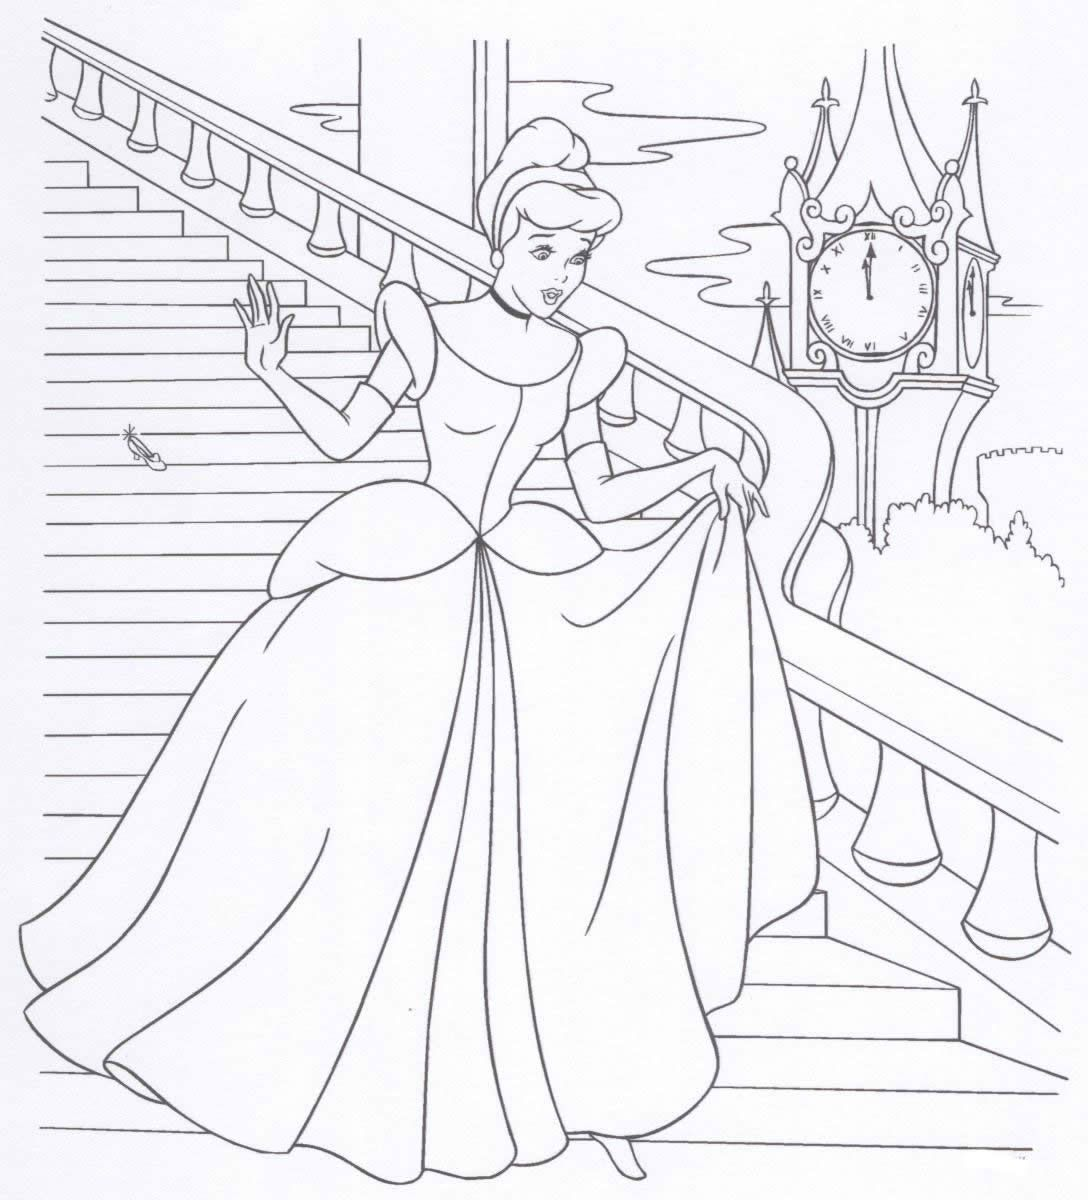 Barbie Coloring Pages Printable To Download Procoloring